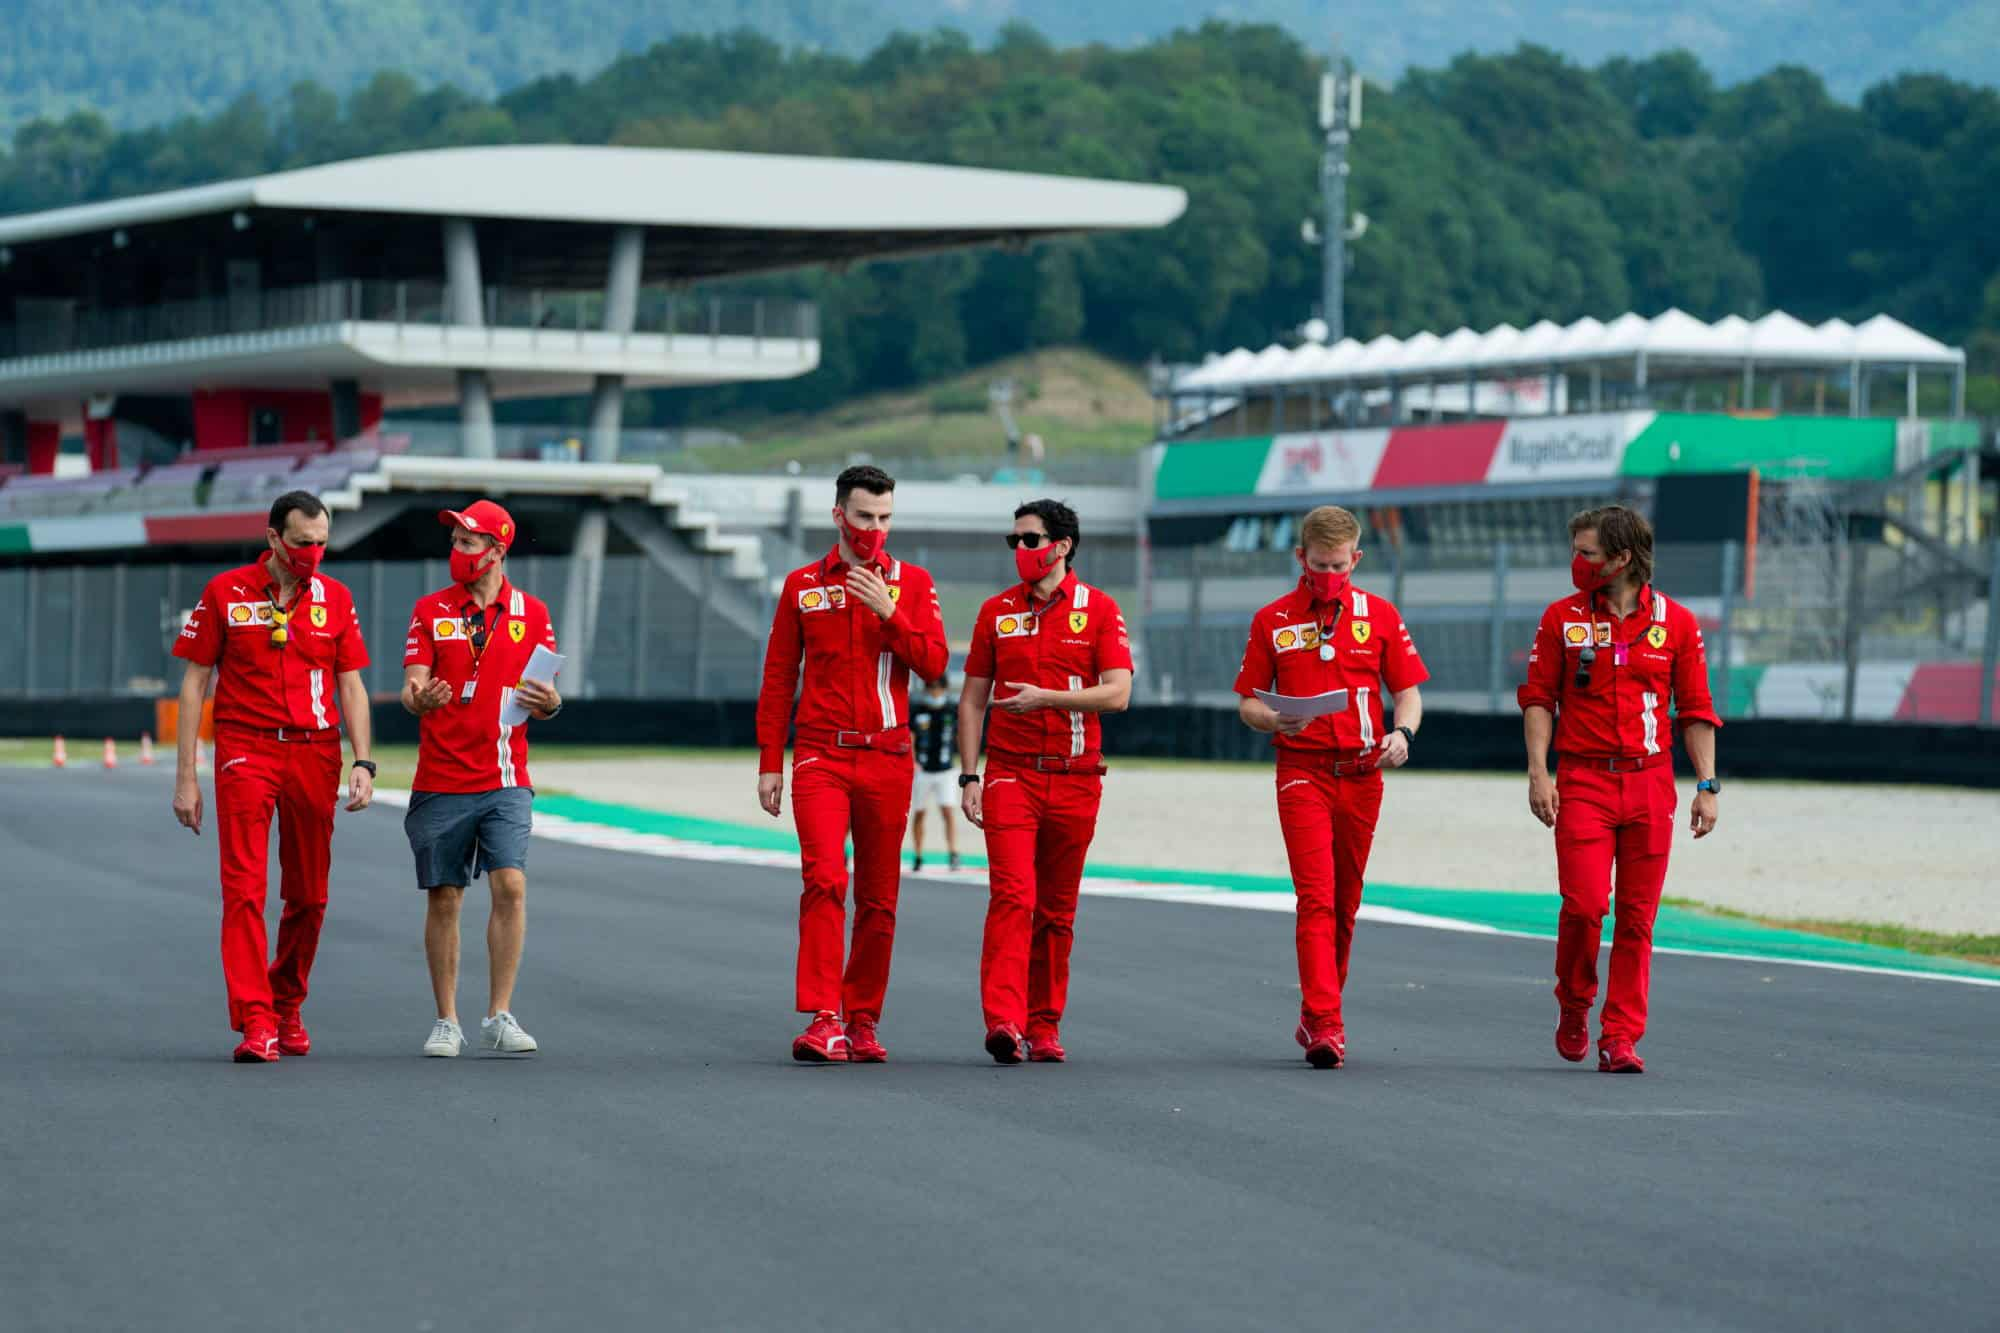 2020 Tuscan GP Mugello circuit Vettel Ferrari on track walk Thursday Photo Ferrari